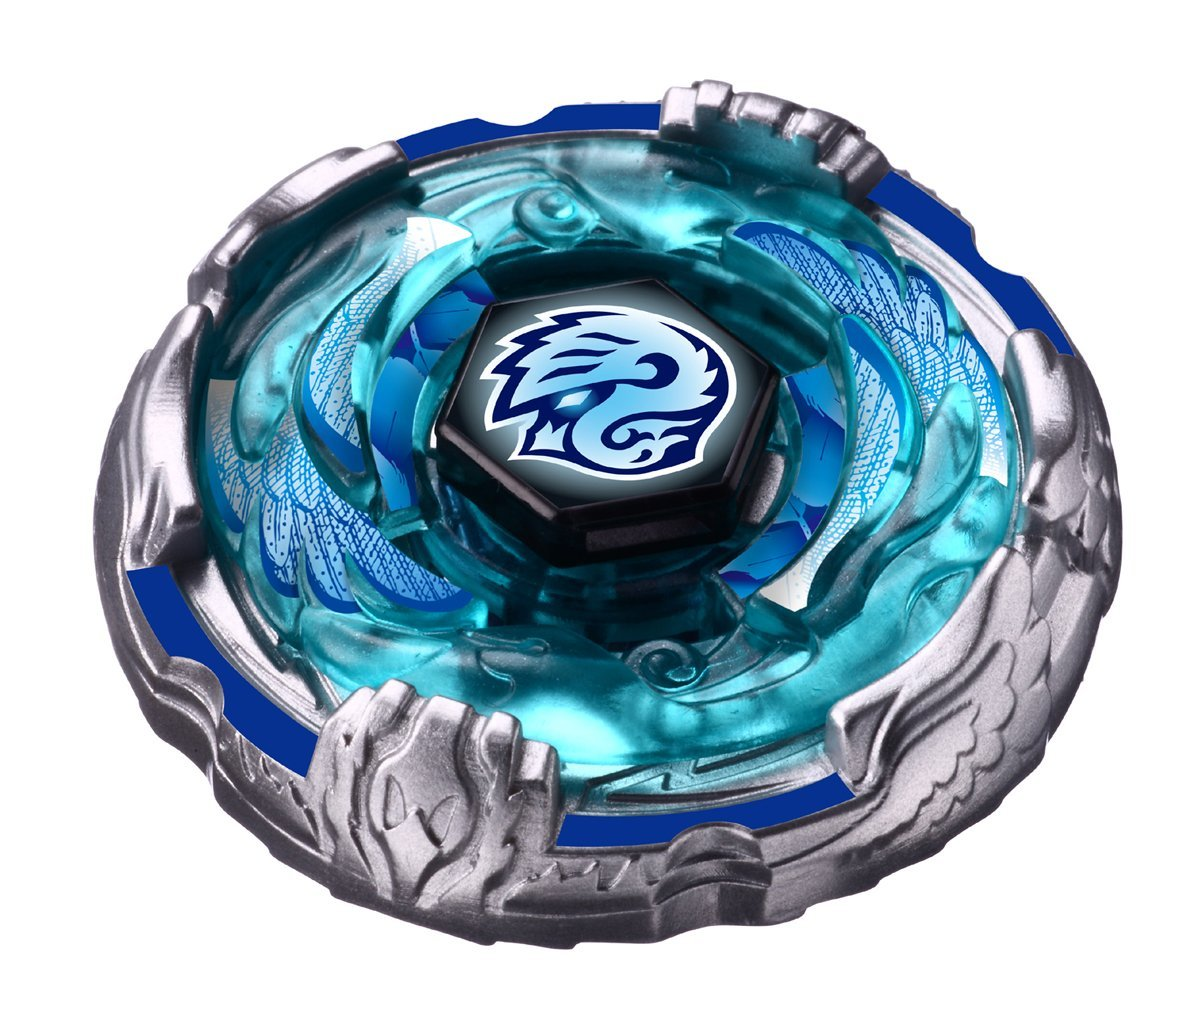 Watch Beyblade Metal Fury Episode 4 LDrago Destructor